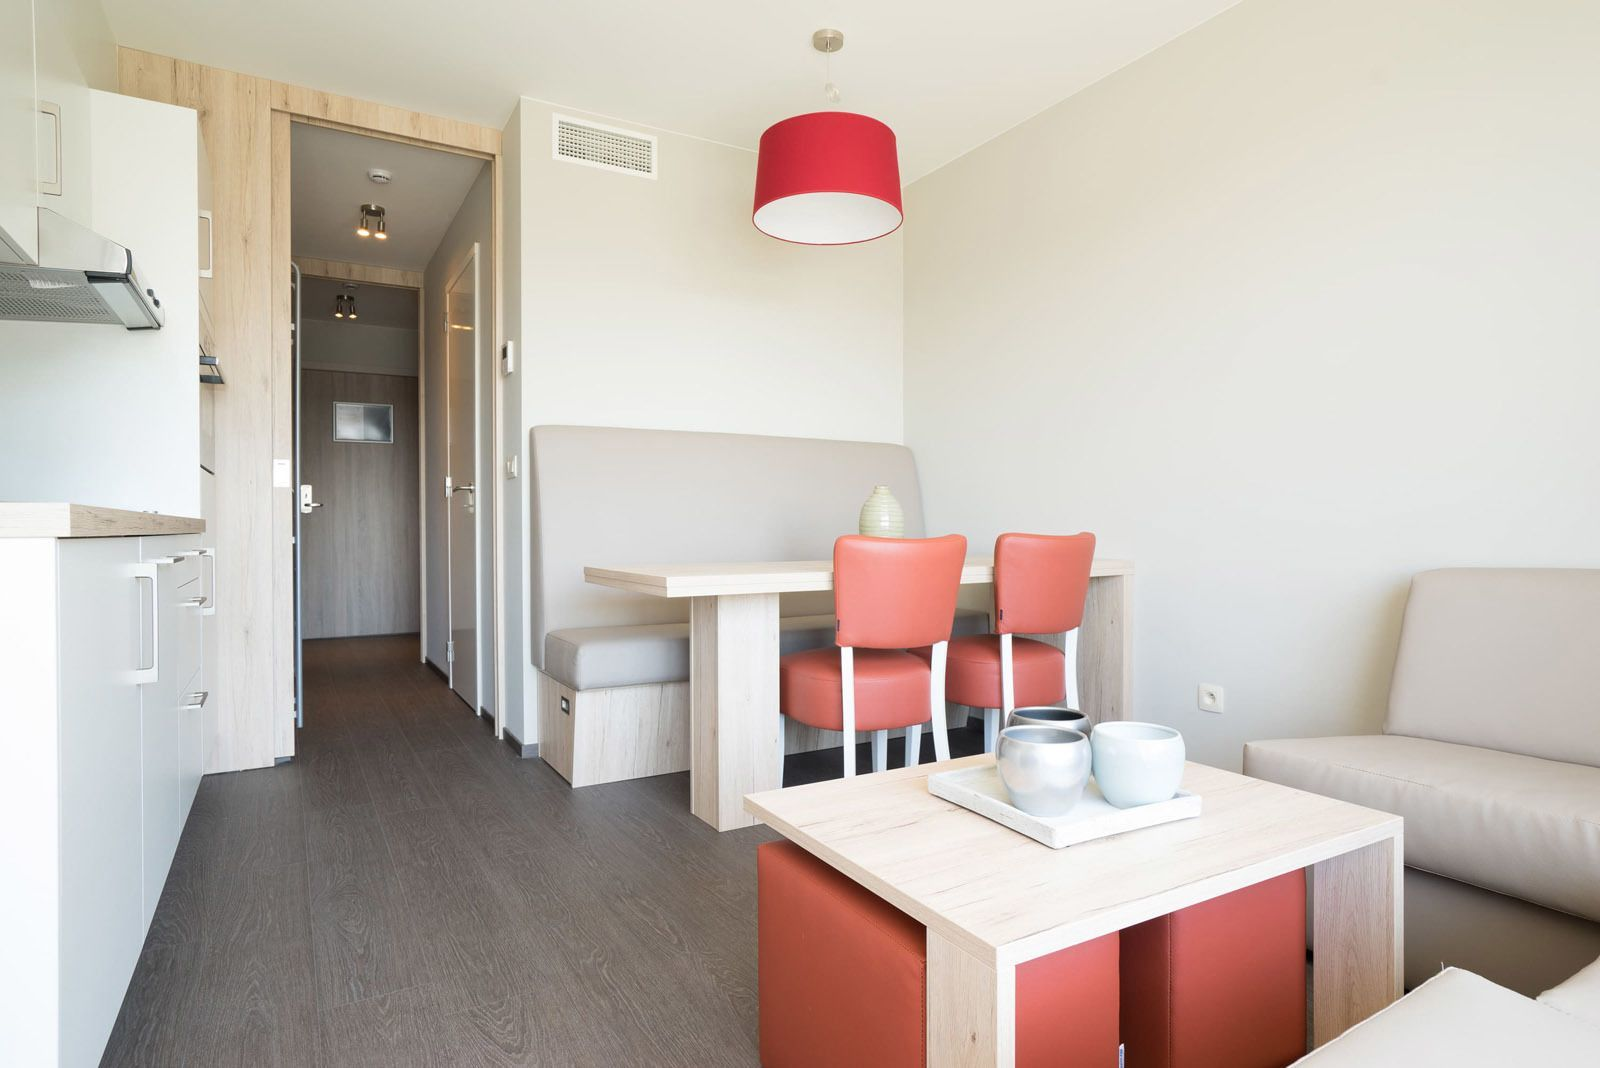 Standard Holiday Suite for 2 adults and 3 children